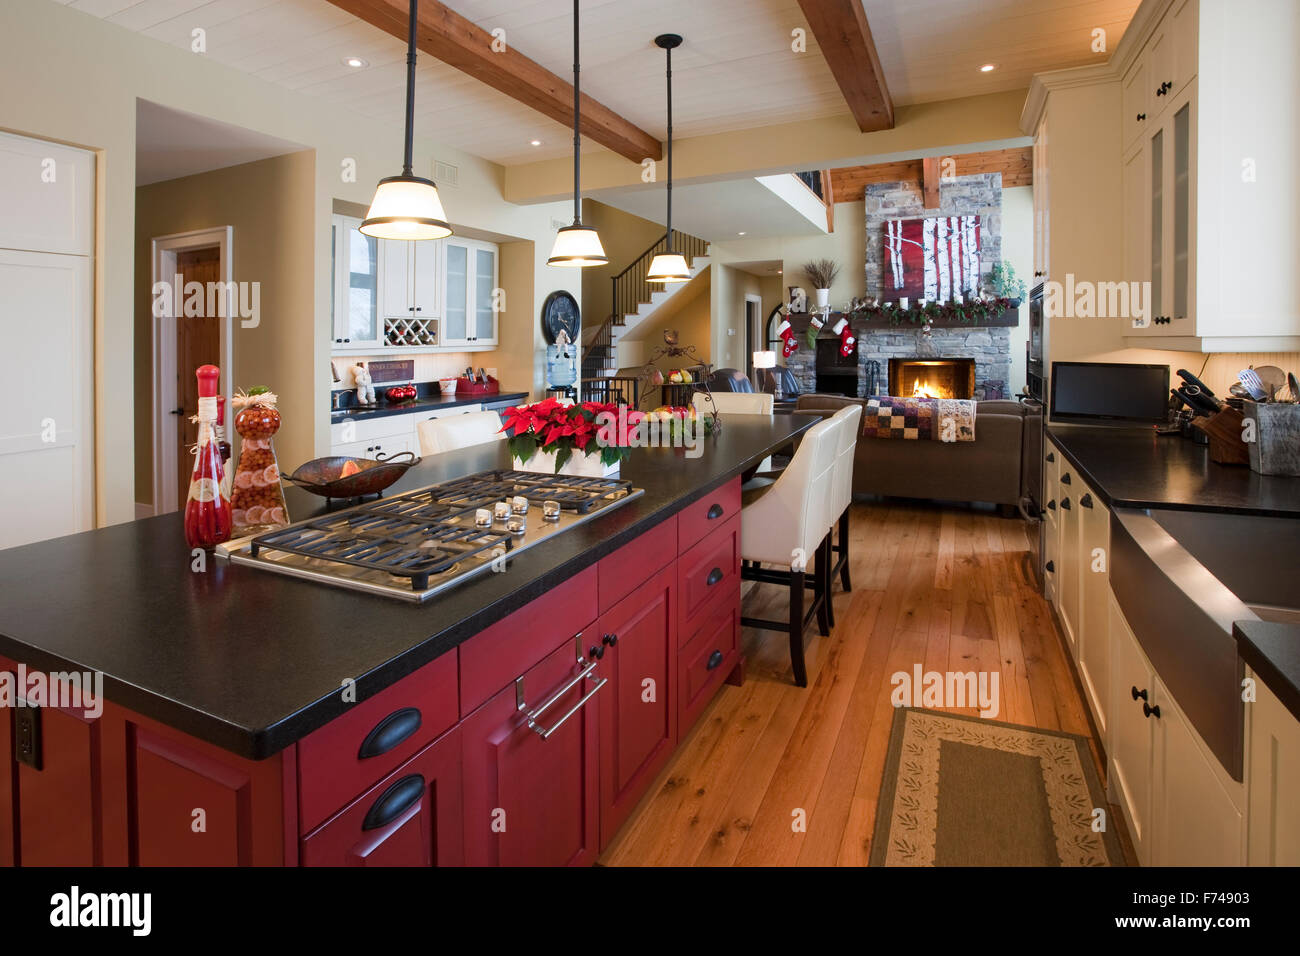 upscale kitchen with Christmas decorations - Stock Image